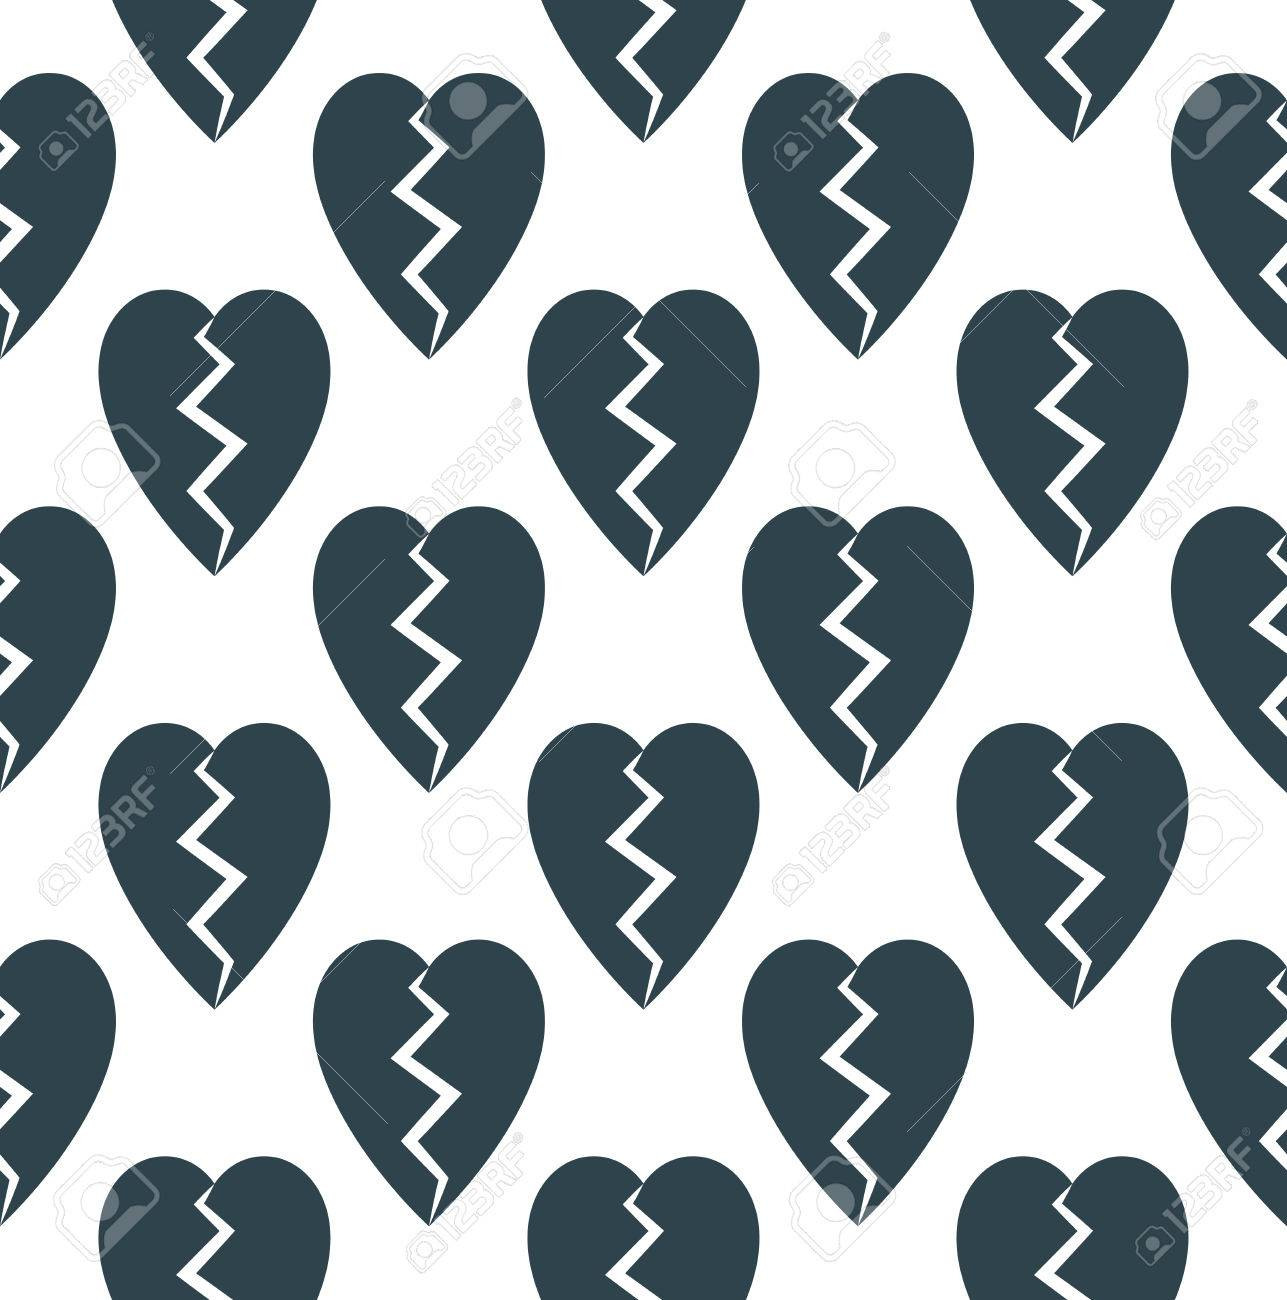 Abstract Black Retro Broken Heart Love Texture Background Wallpaper Vector Stock